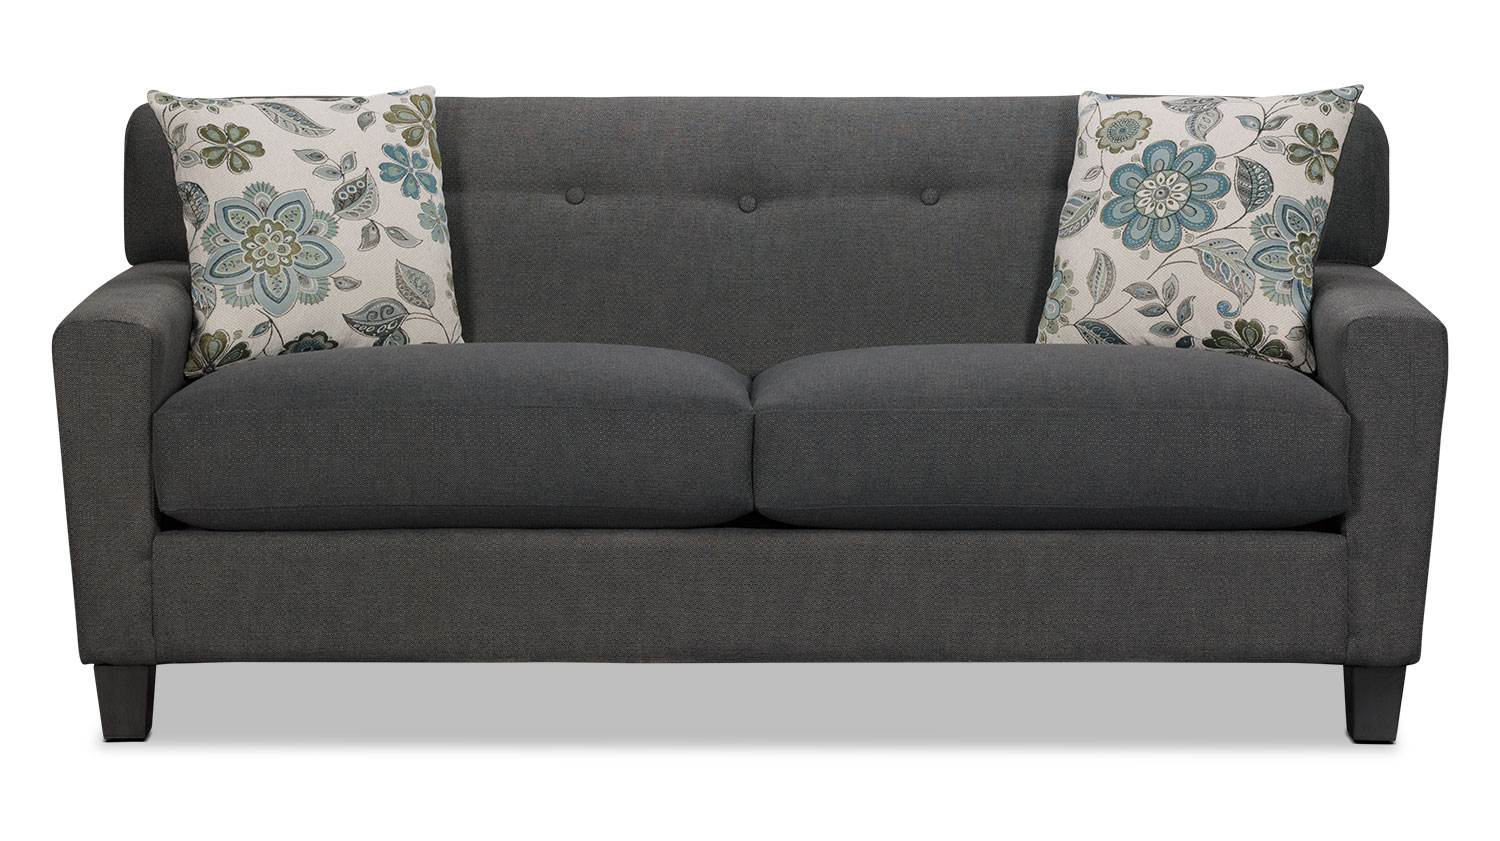 Living Room Furniture - Aubrey Linen-Look Fabric Sofa - Charcoal